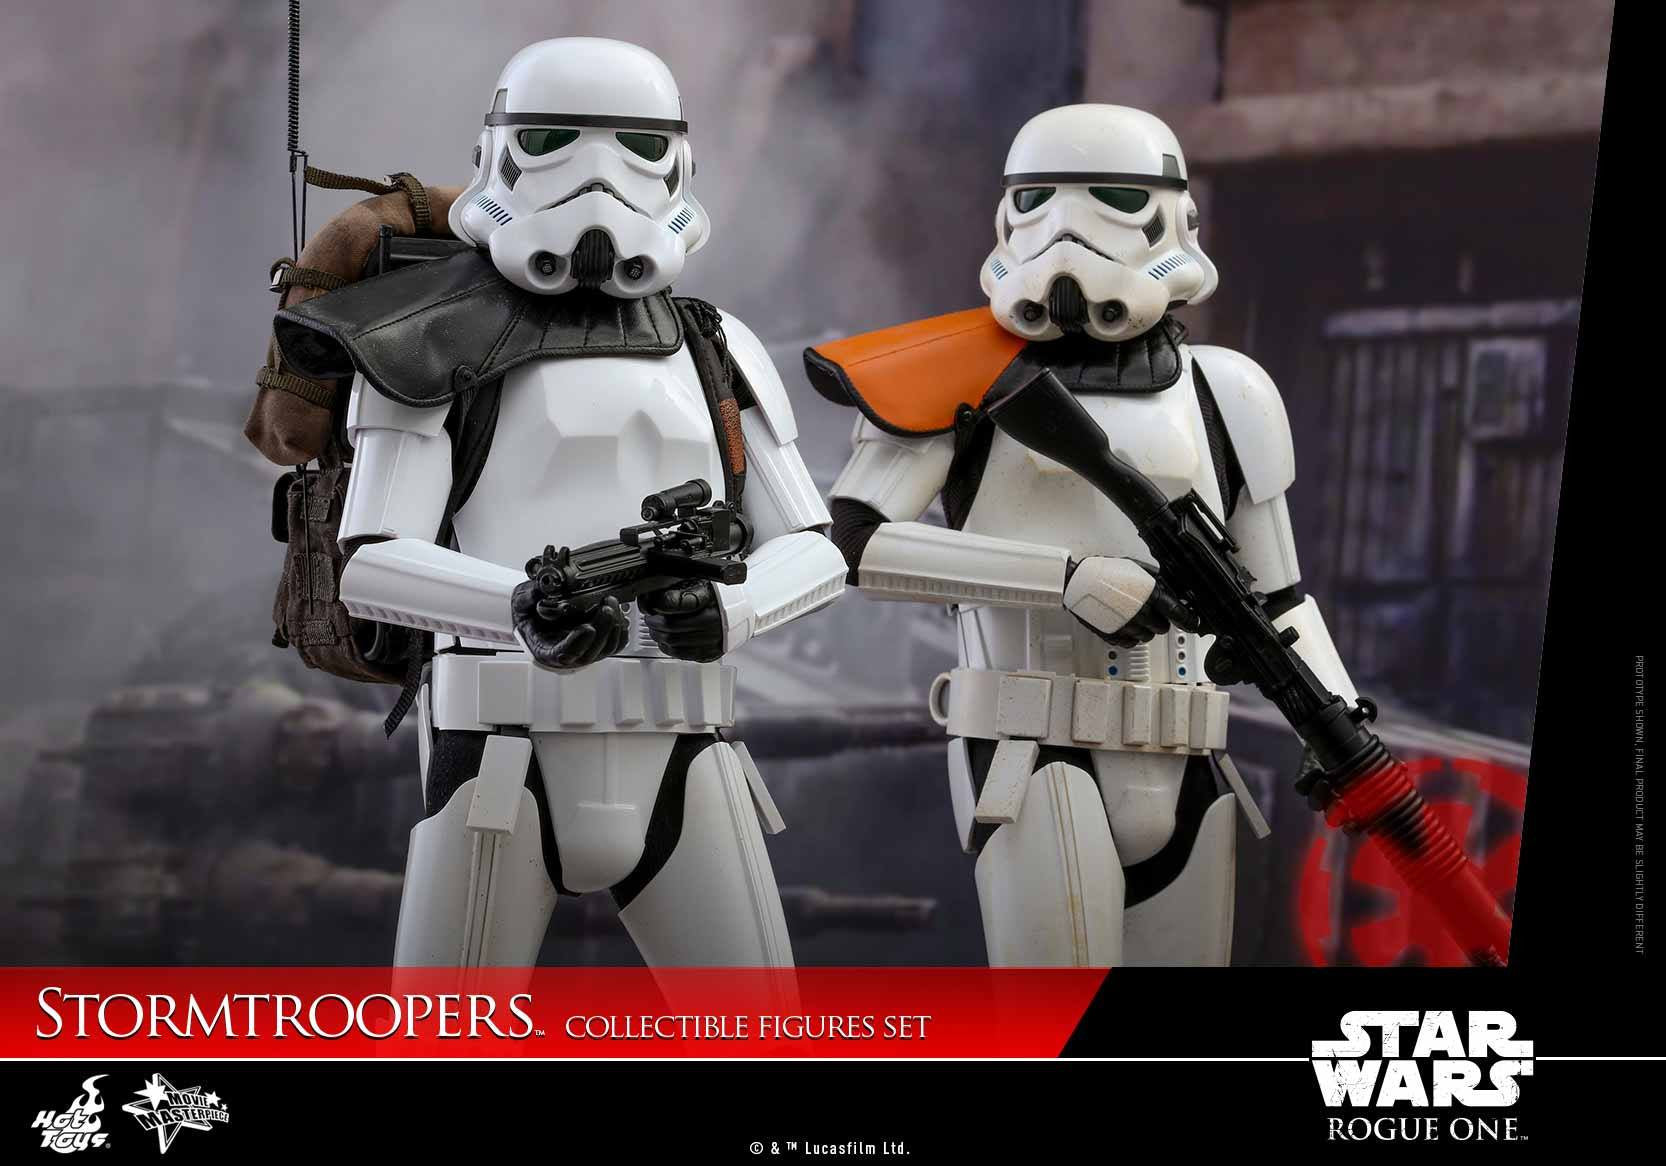 Hot Toys - MMS394 - Rogue One: A Star Wars Story - Stormtroopers Set - Marvelous Toys - 9